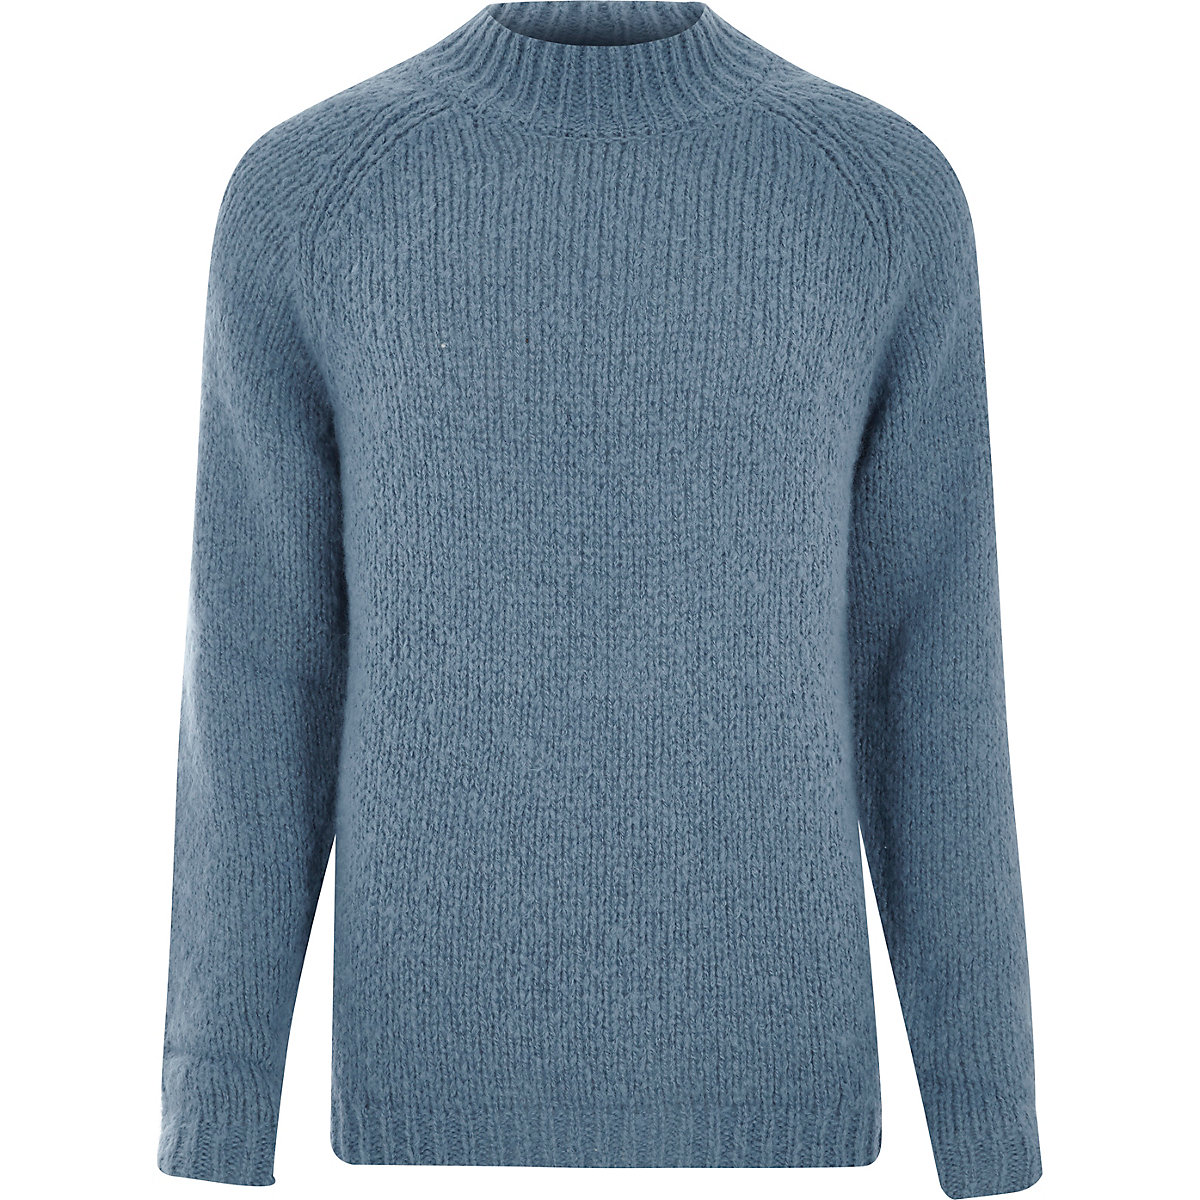 Light blue funnel neck sweater